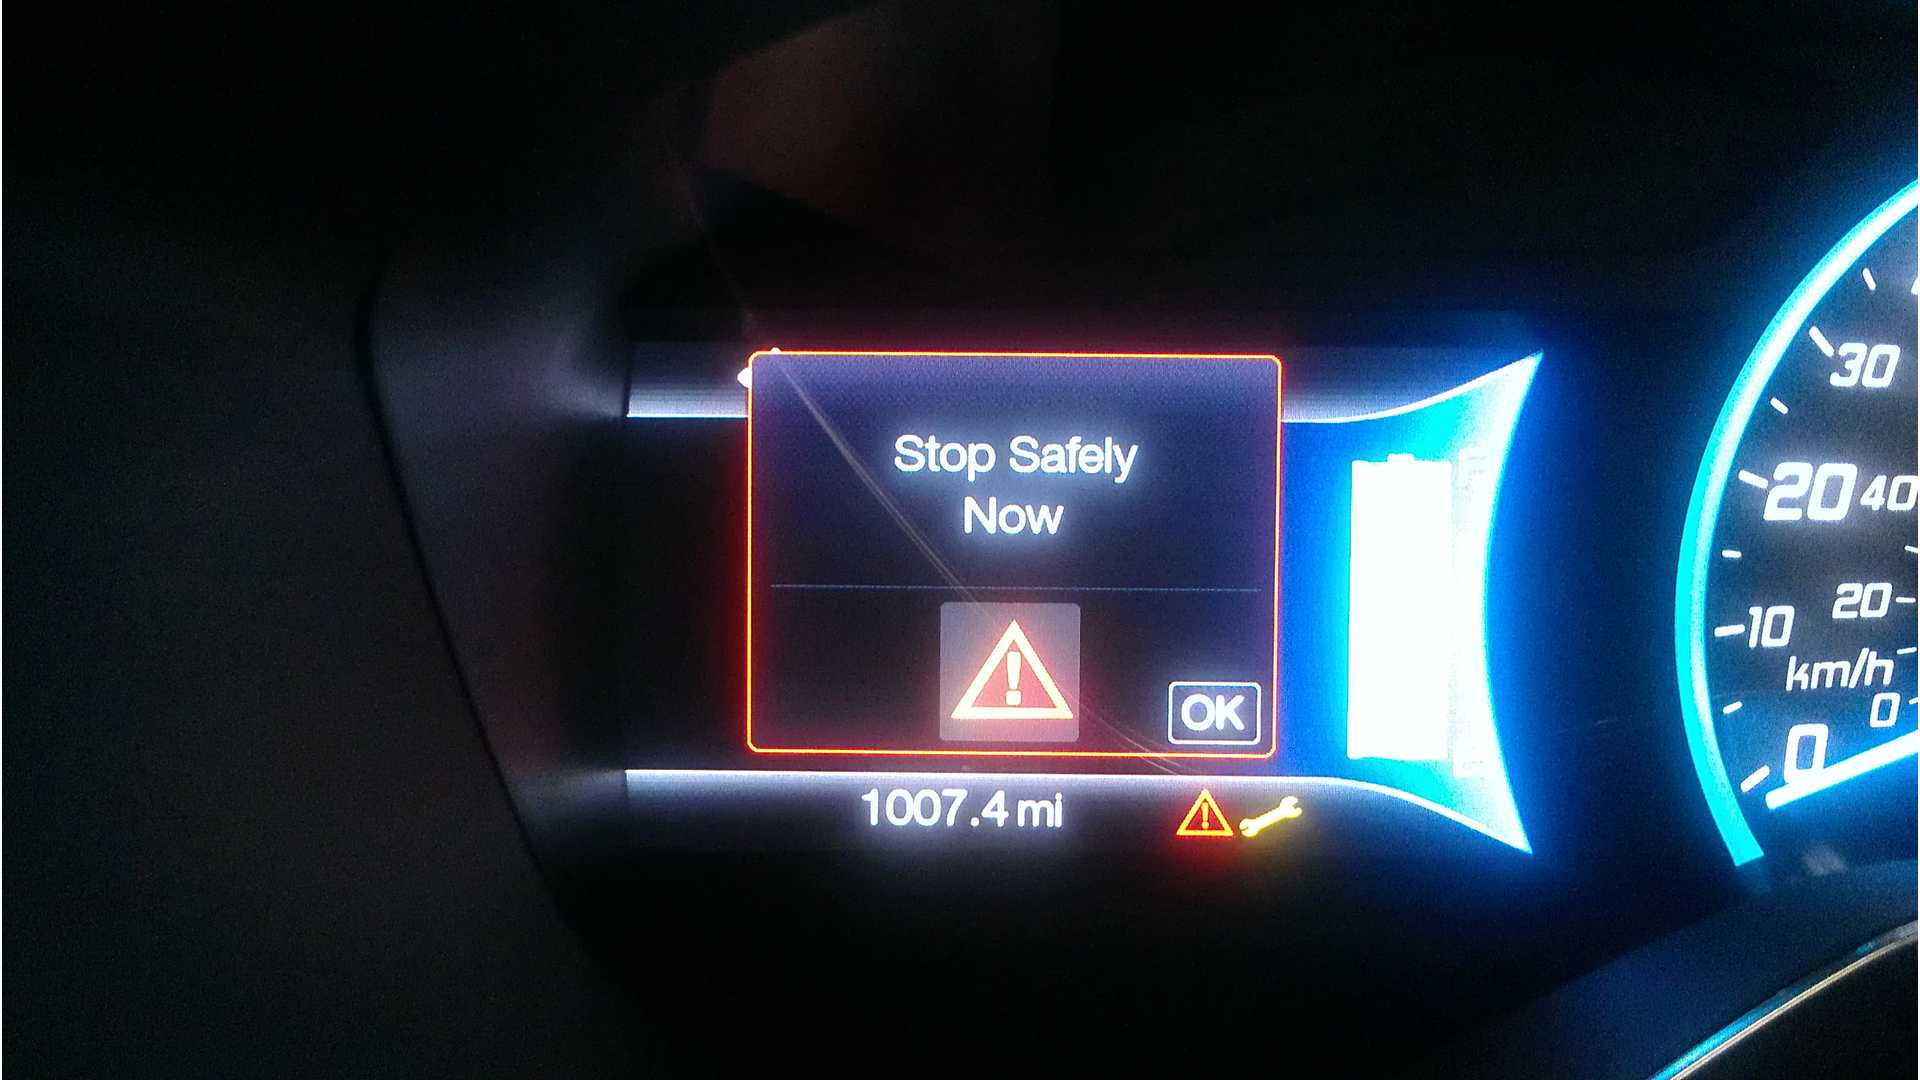 Open Letter From Owner About Focus Electric Drive Failure And The Stop Safely Now Warning